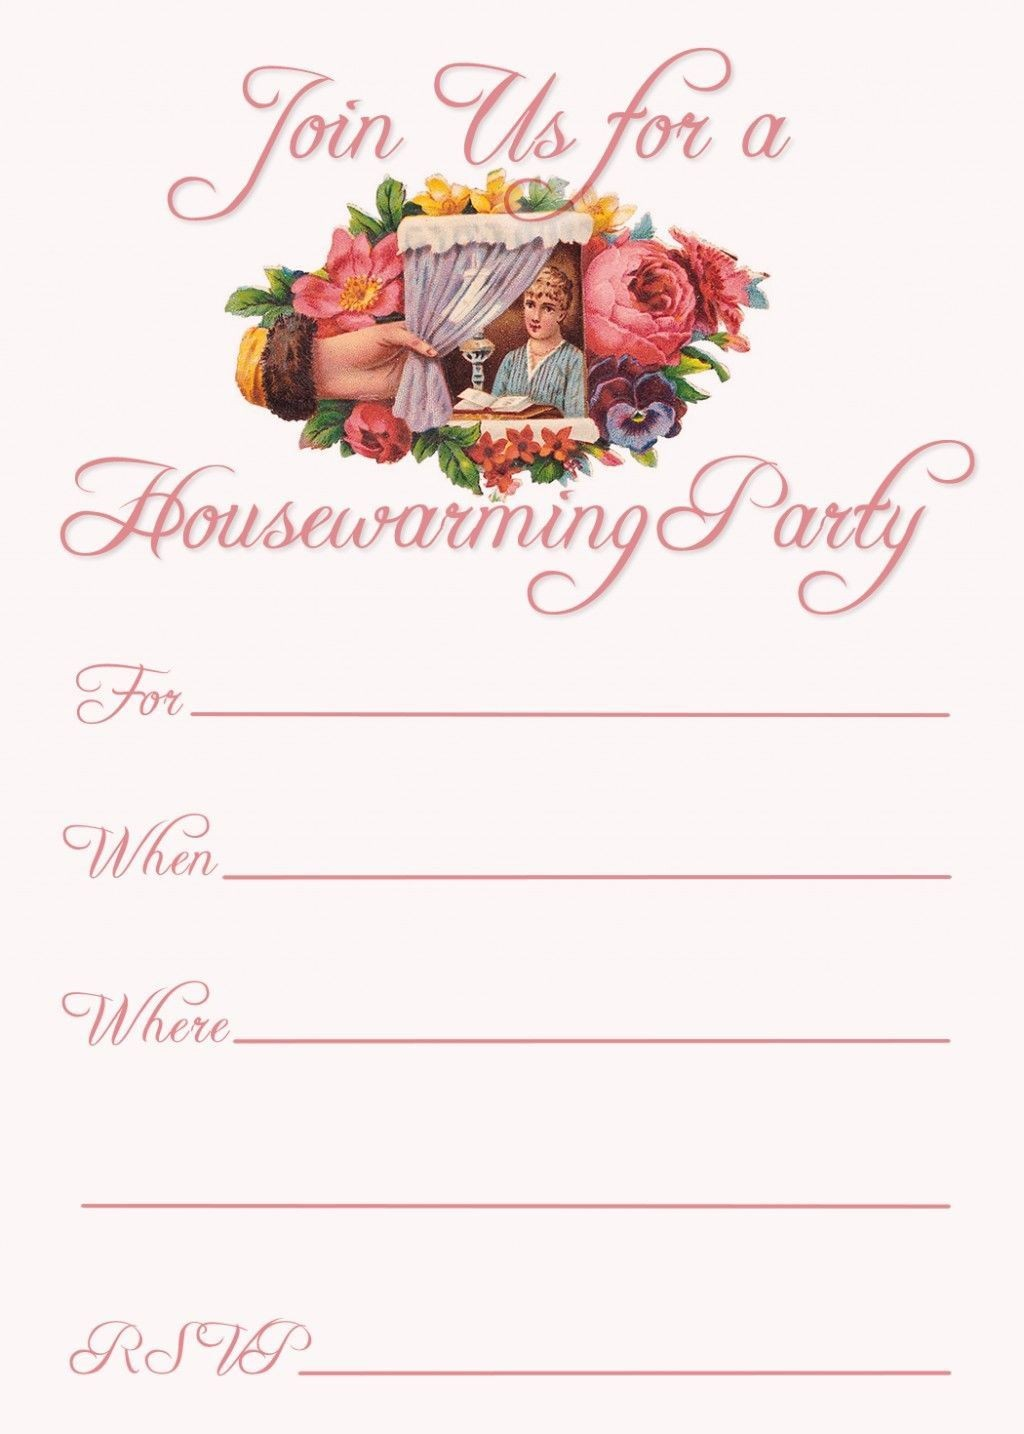 002 Archaicawful Housewarming Party Invite Template Inspiration  Templates Invitation Maker EditableLarge